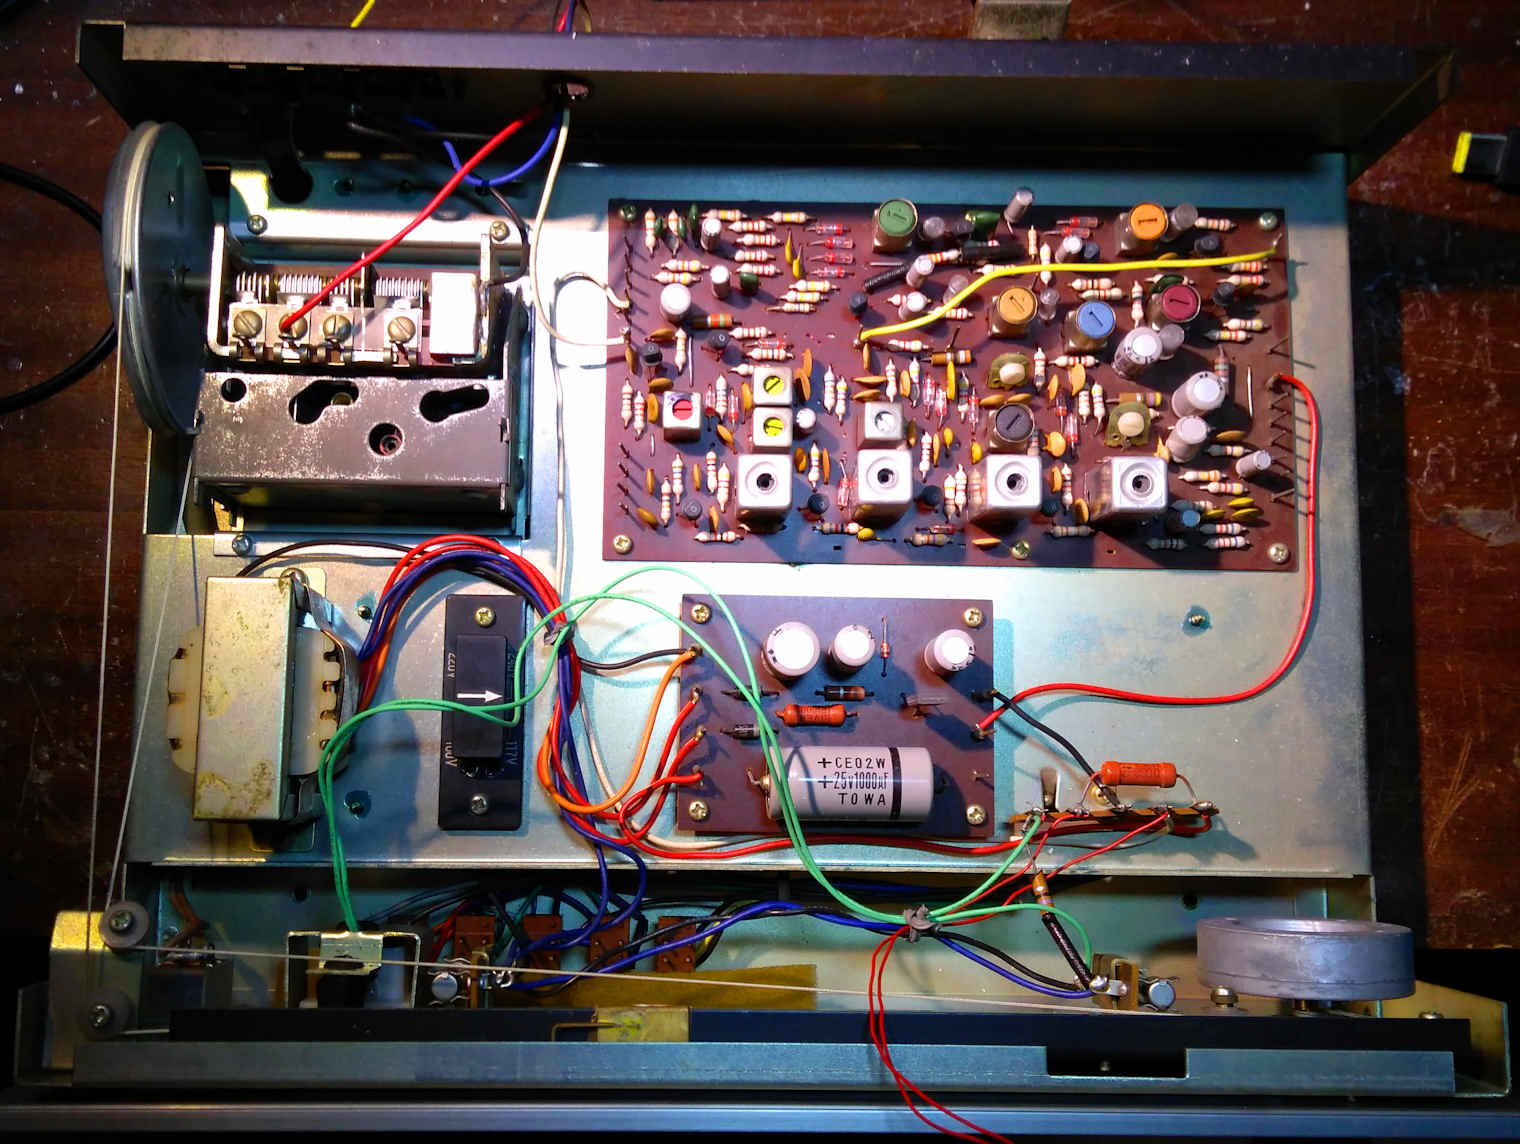 Luxman Vintage Website Download The Schematic In Pdf Format Click Here To Diagram Construction